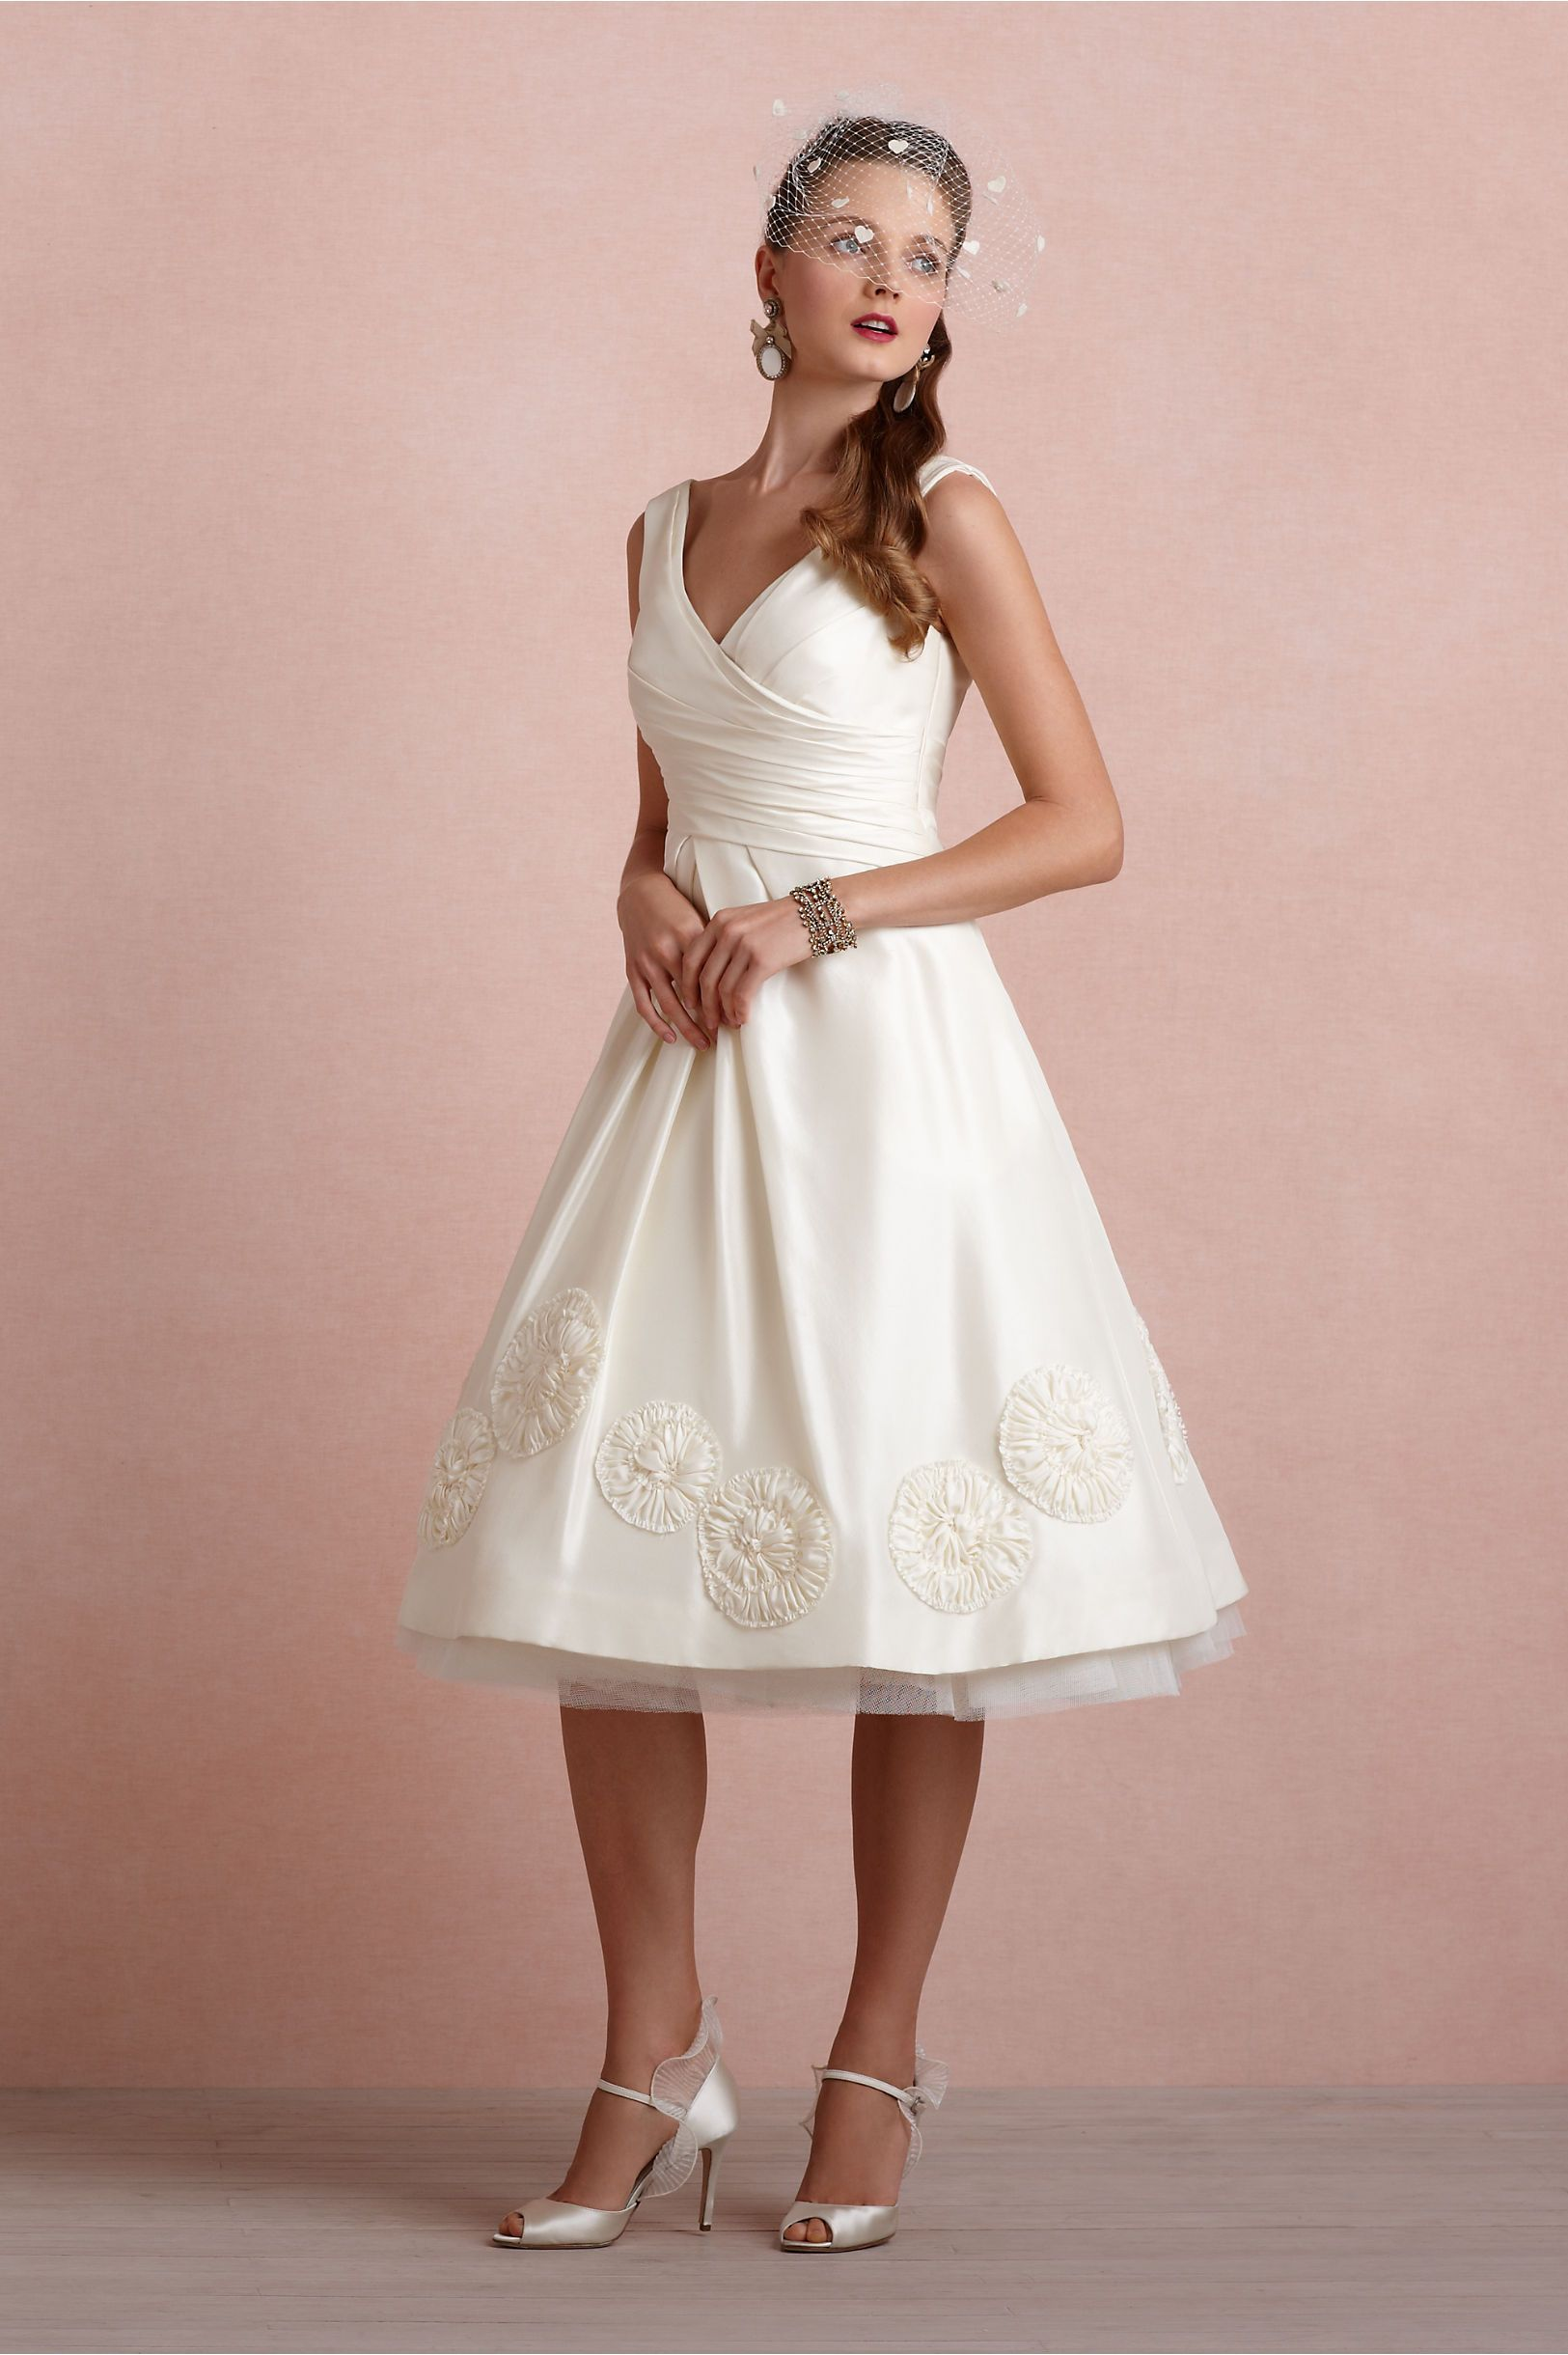 Pinwheel Tea Dress from BHLDN | Wedding dresses | Pinterest ...